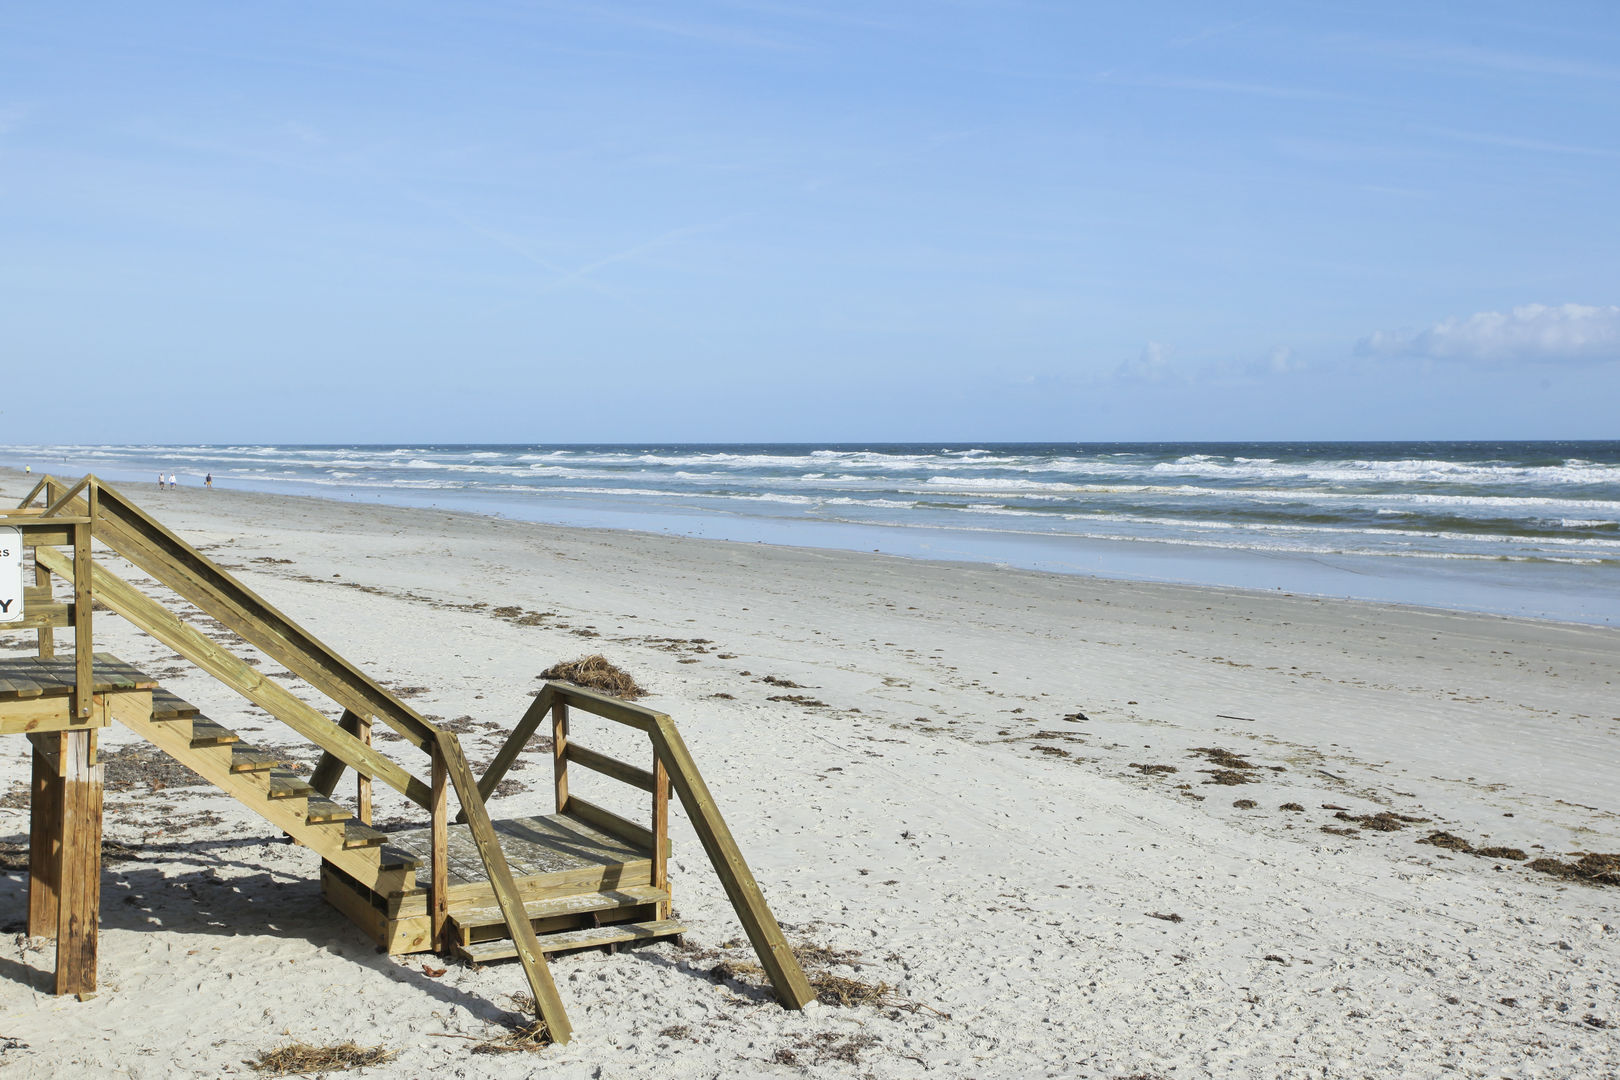 Vacation Rental in New Smyrna Beach with 2 bedrooms that sleeps 6